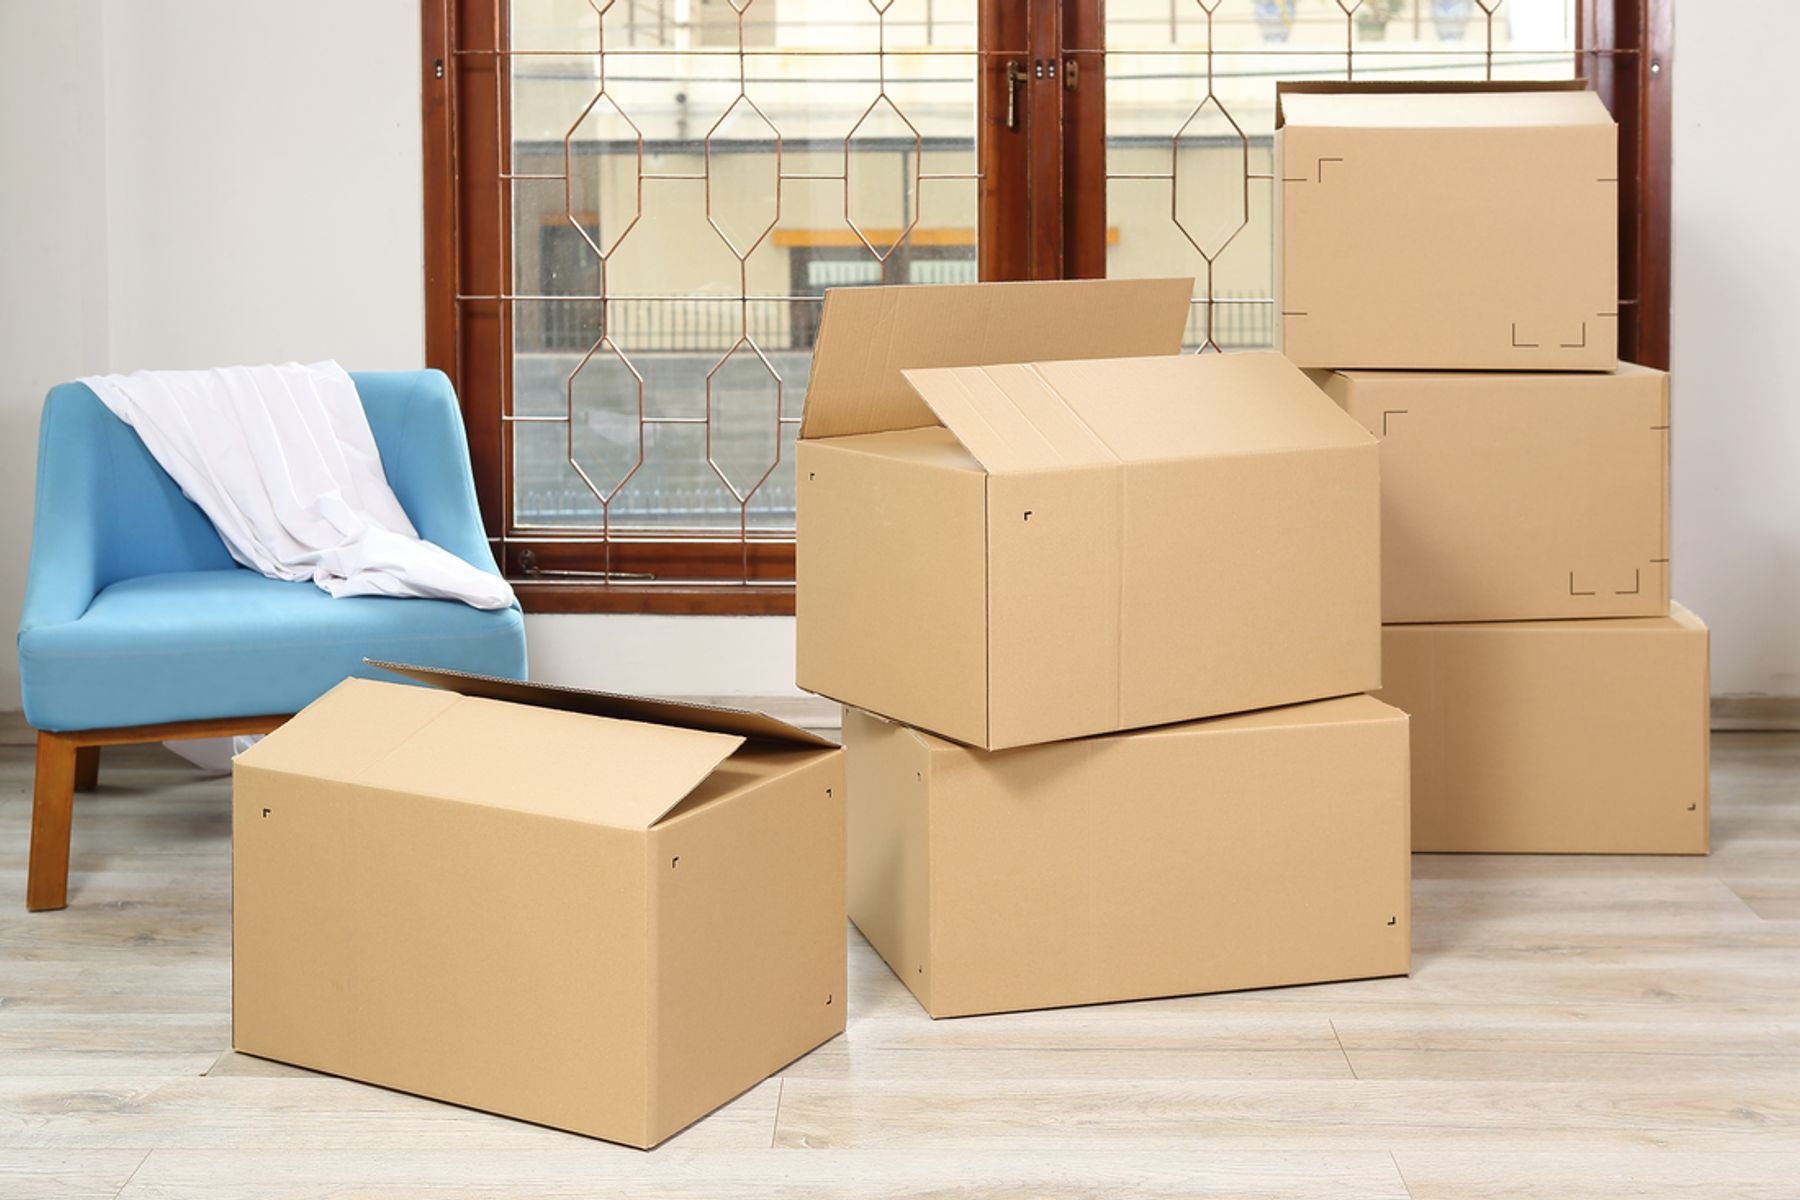 Image of multiple boxes at home